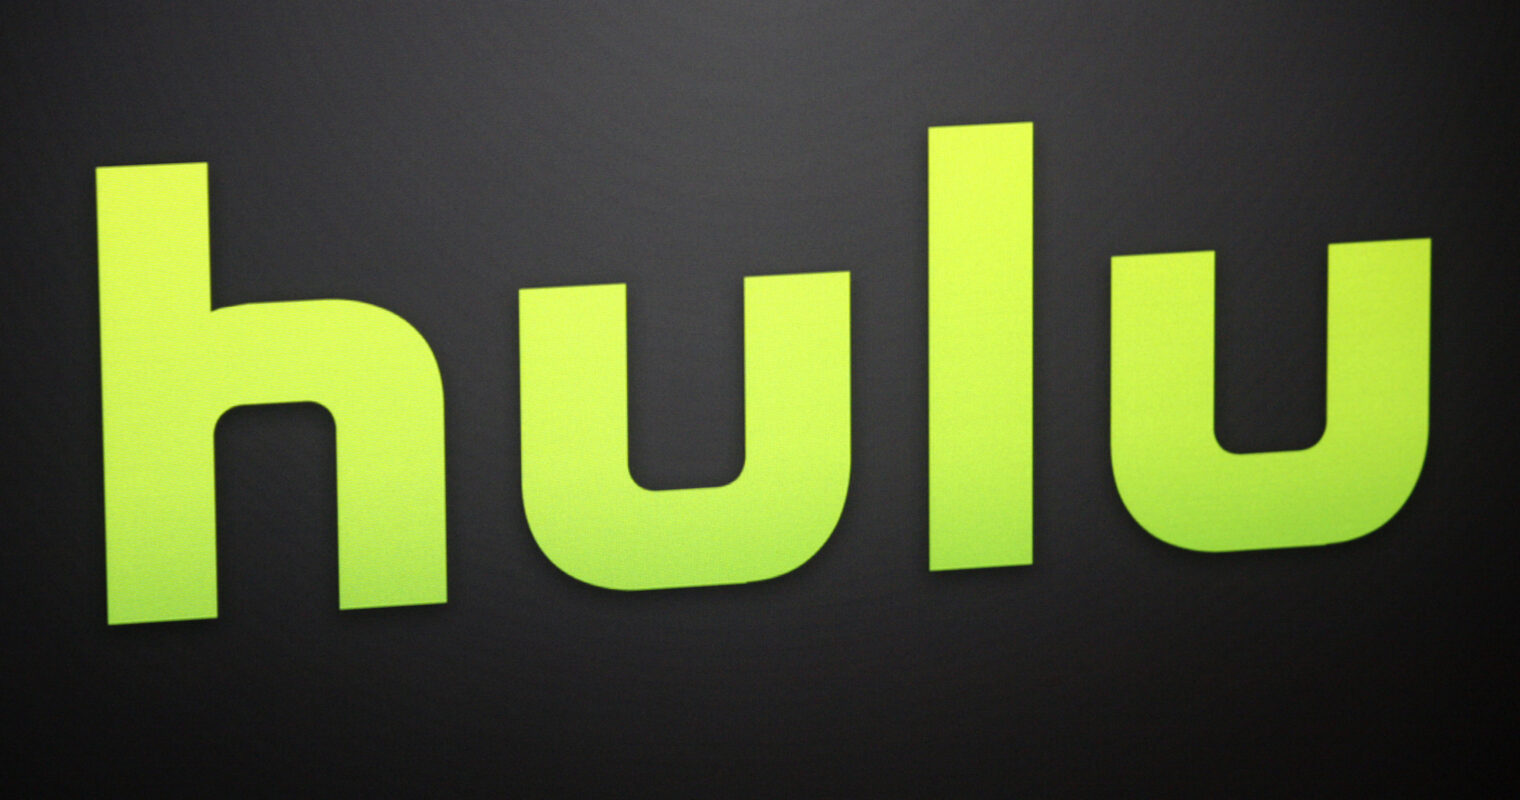 Hulu Launches Beta for Self-Serve Advertising Platform